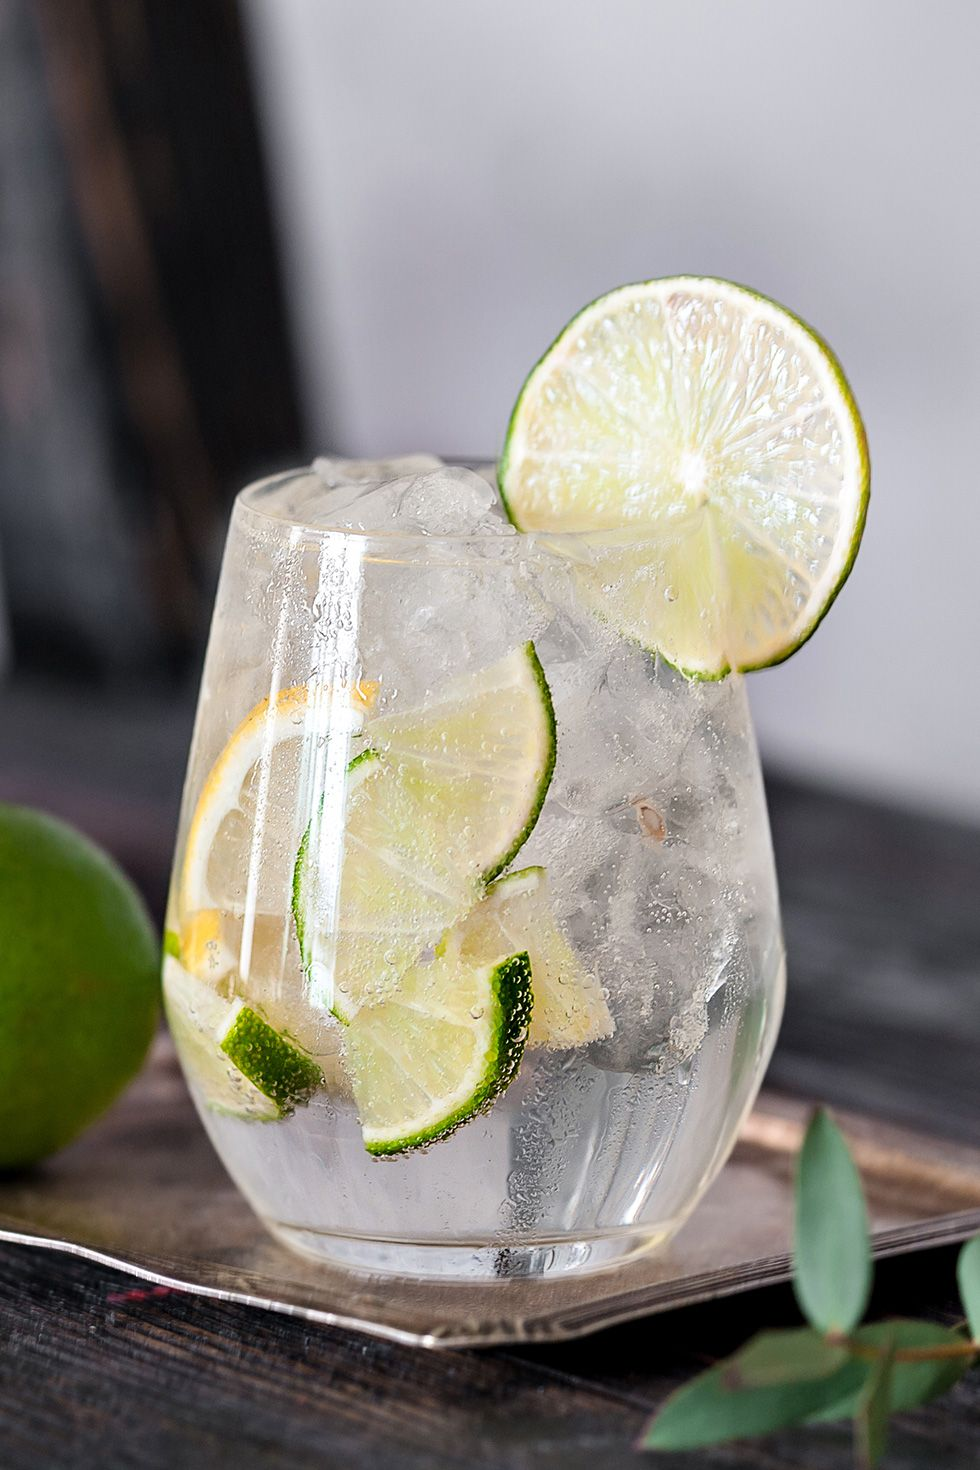 sparkling water in glass with cut lemons and limes